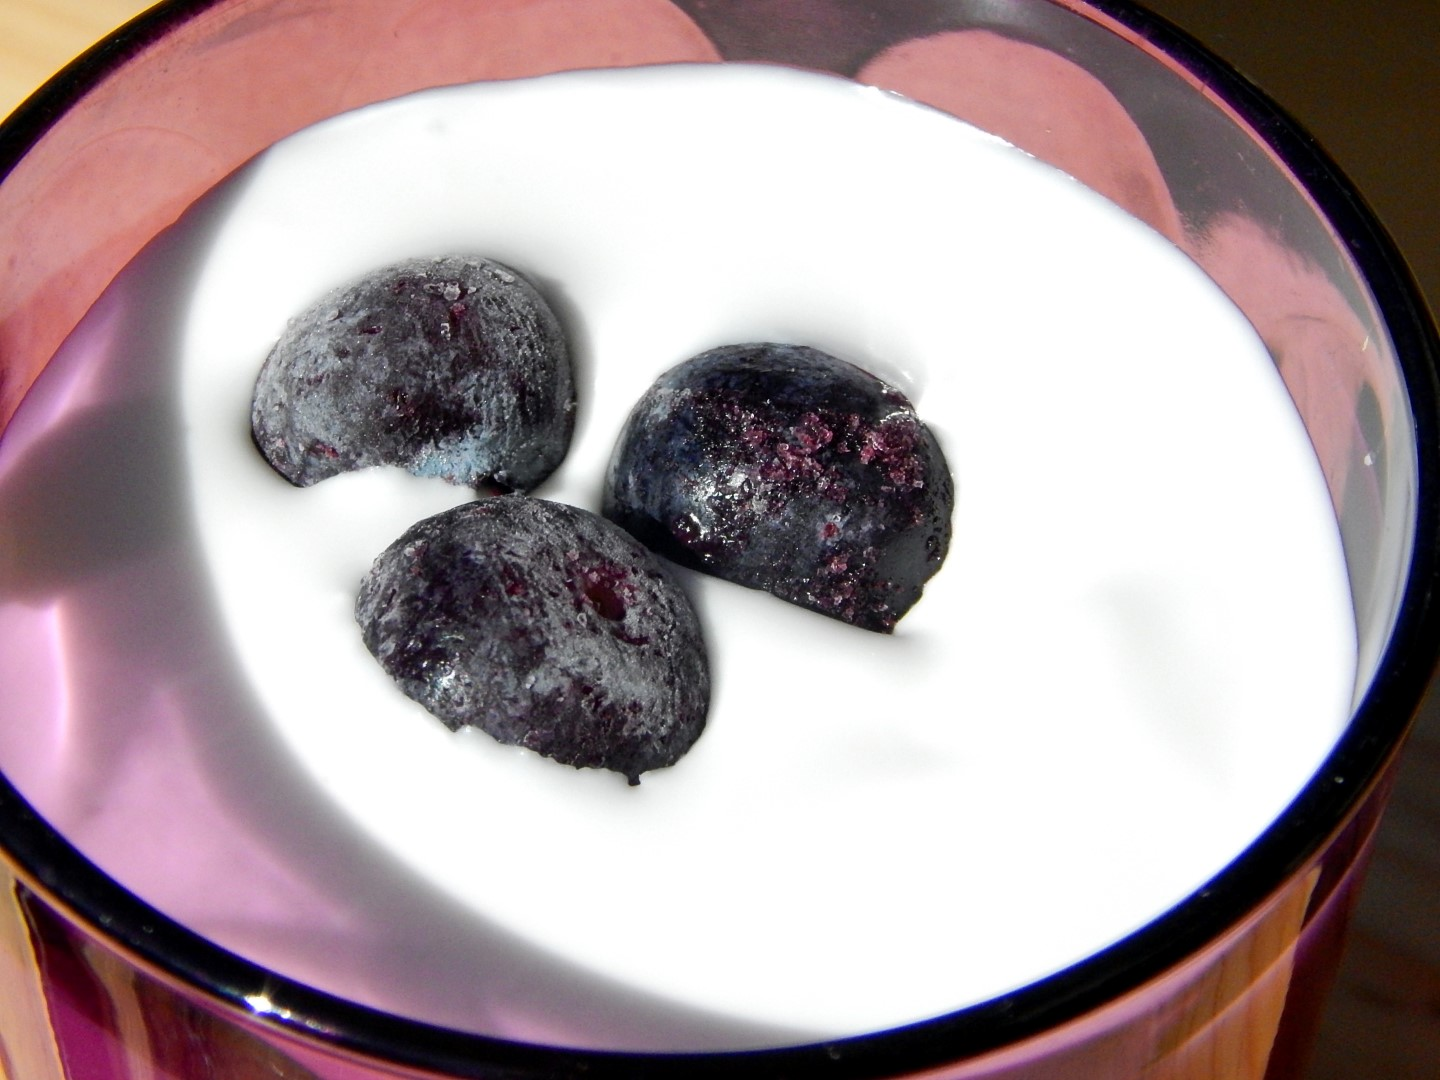 Cultured coconut milk with blueberries.